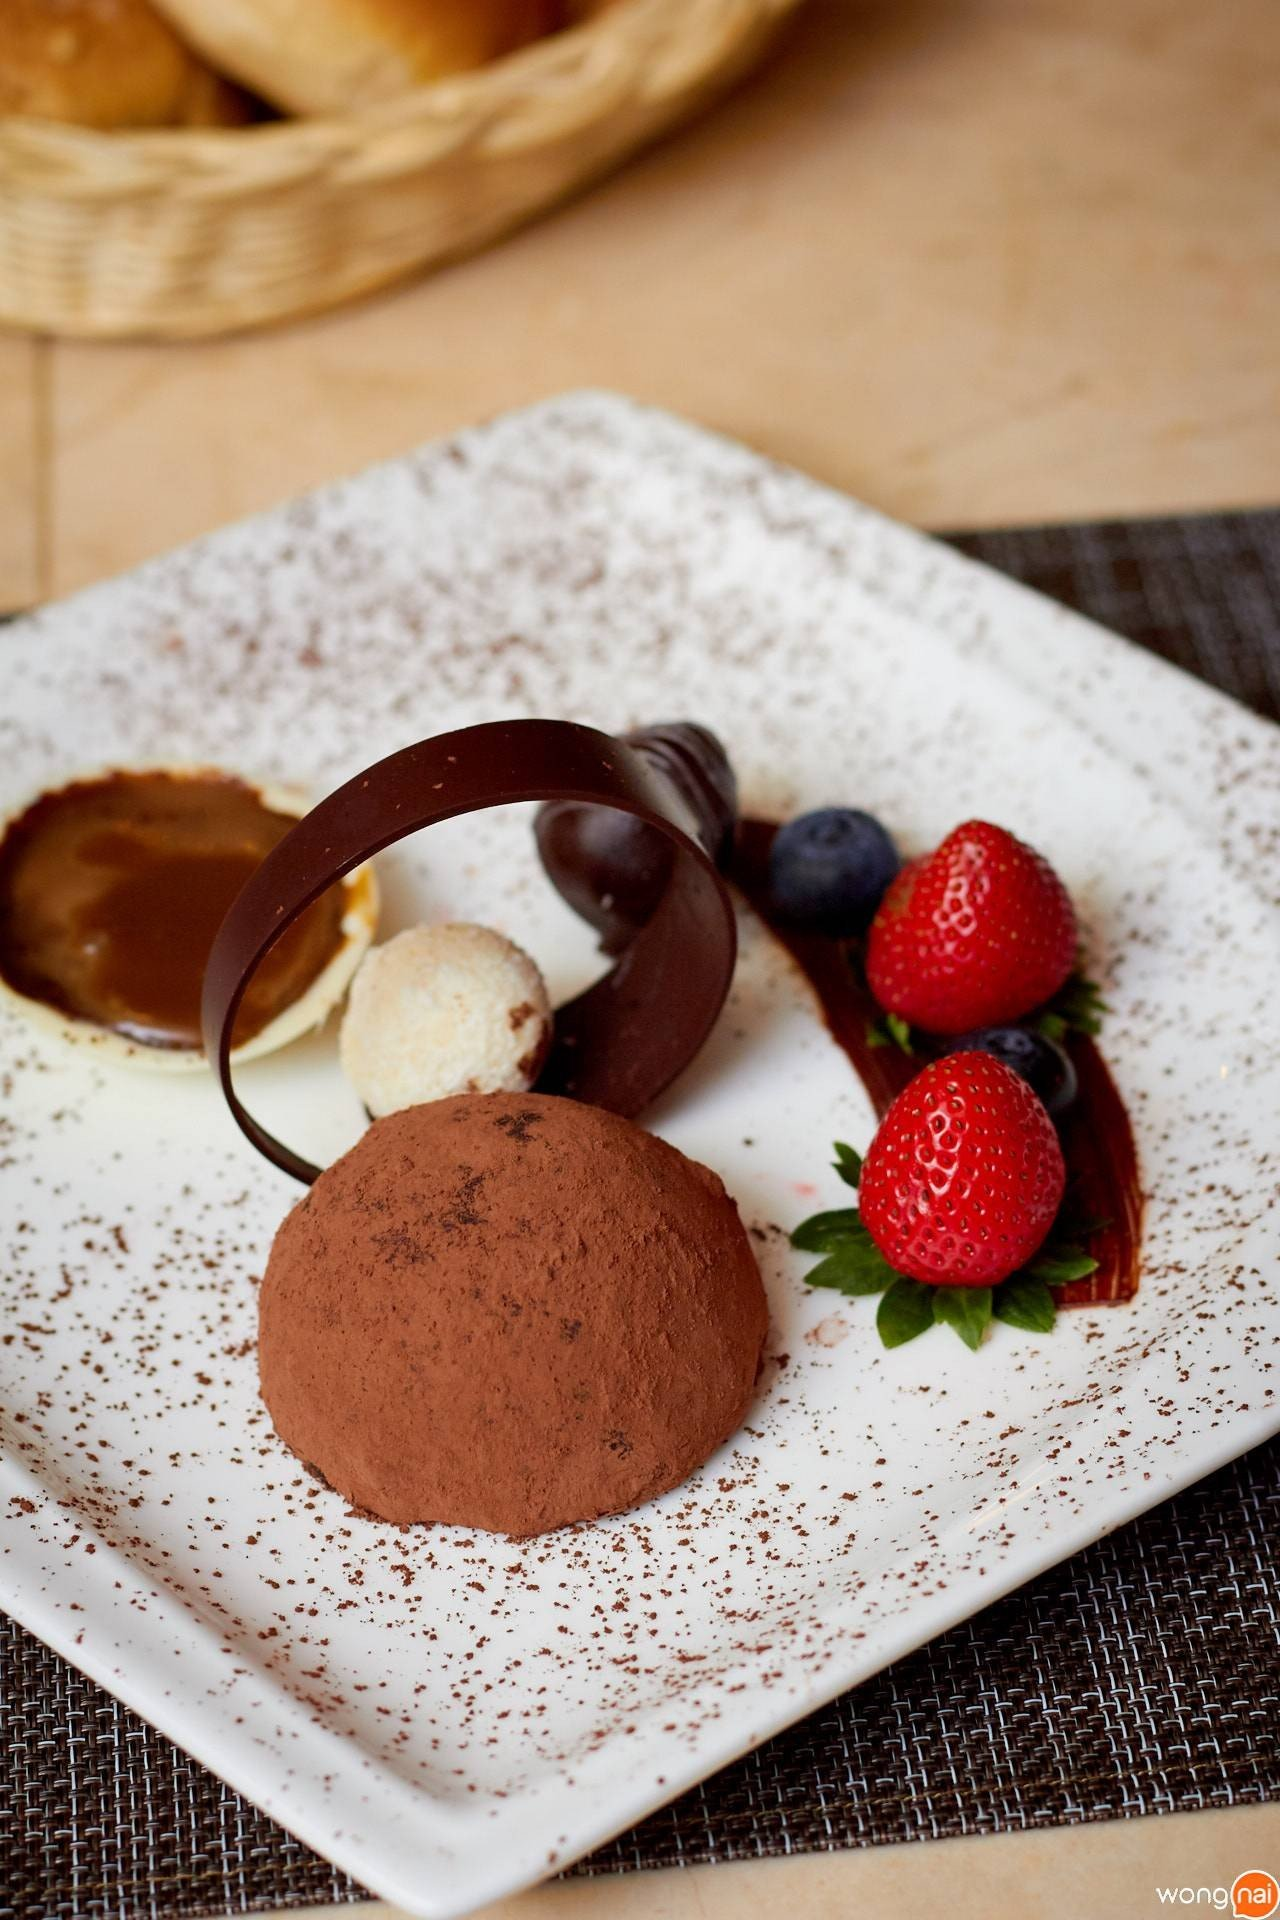 Chocolate Truffle Soaked in Freshly Brewed Coffee  ของร้าน No.43 Italian Bistro